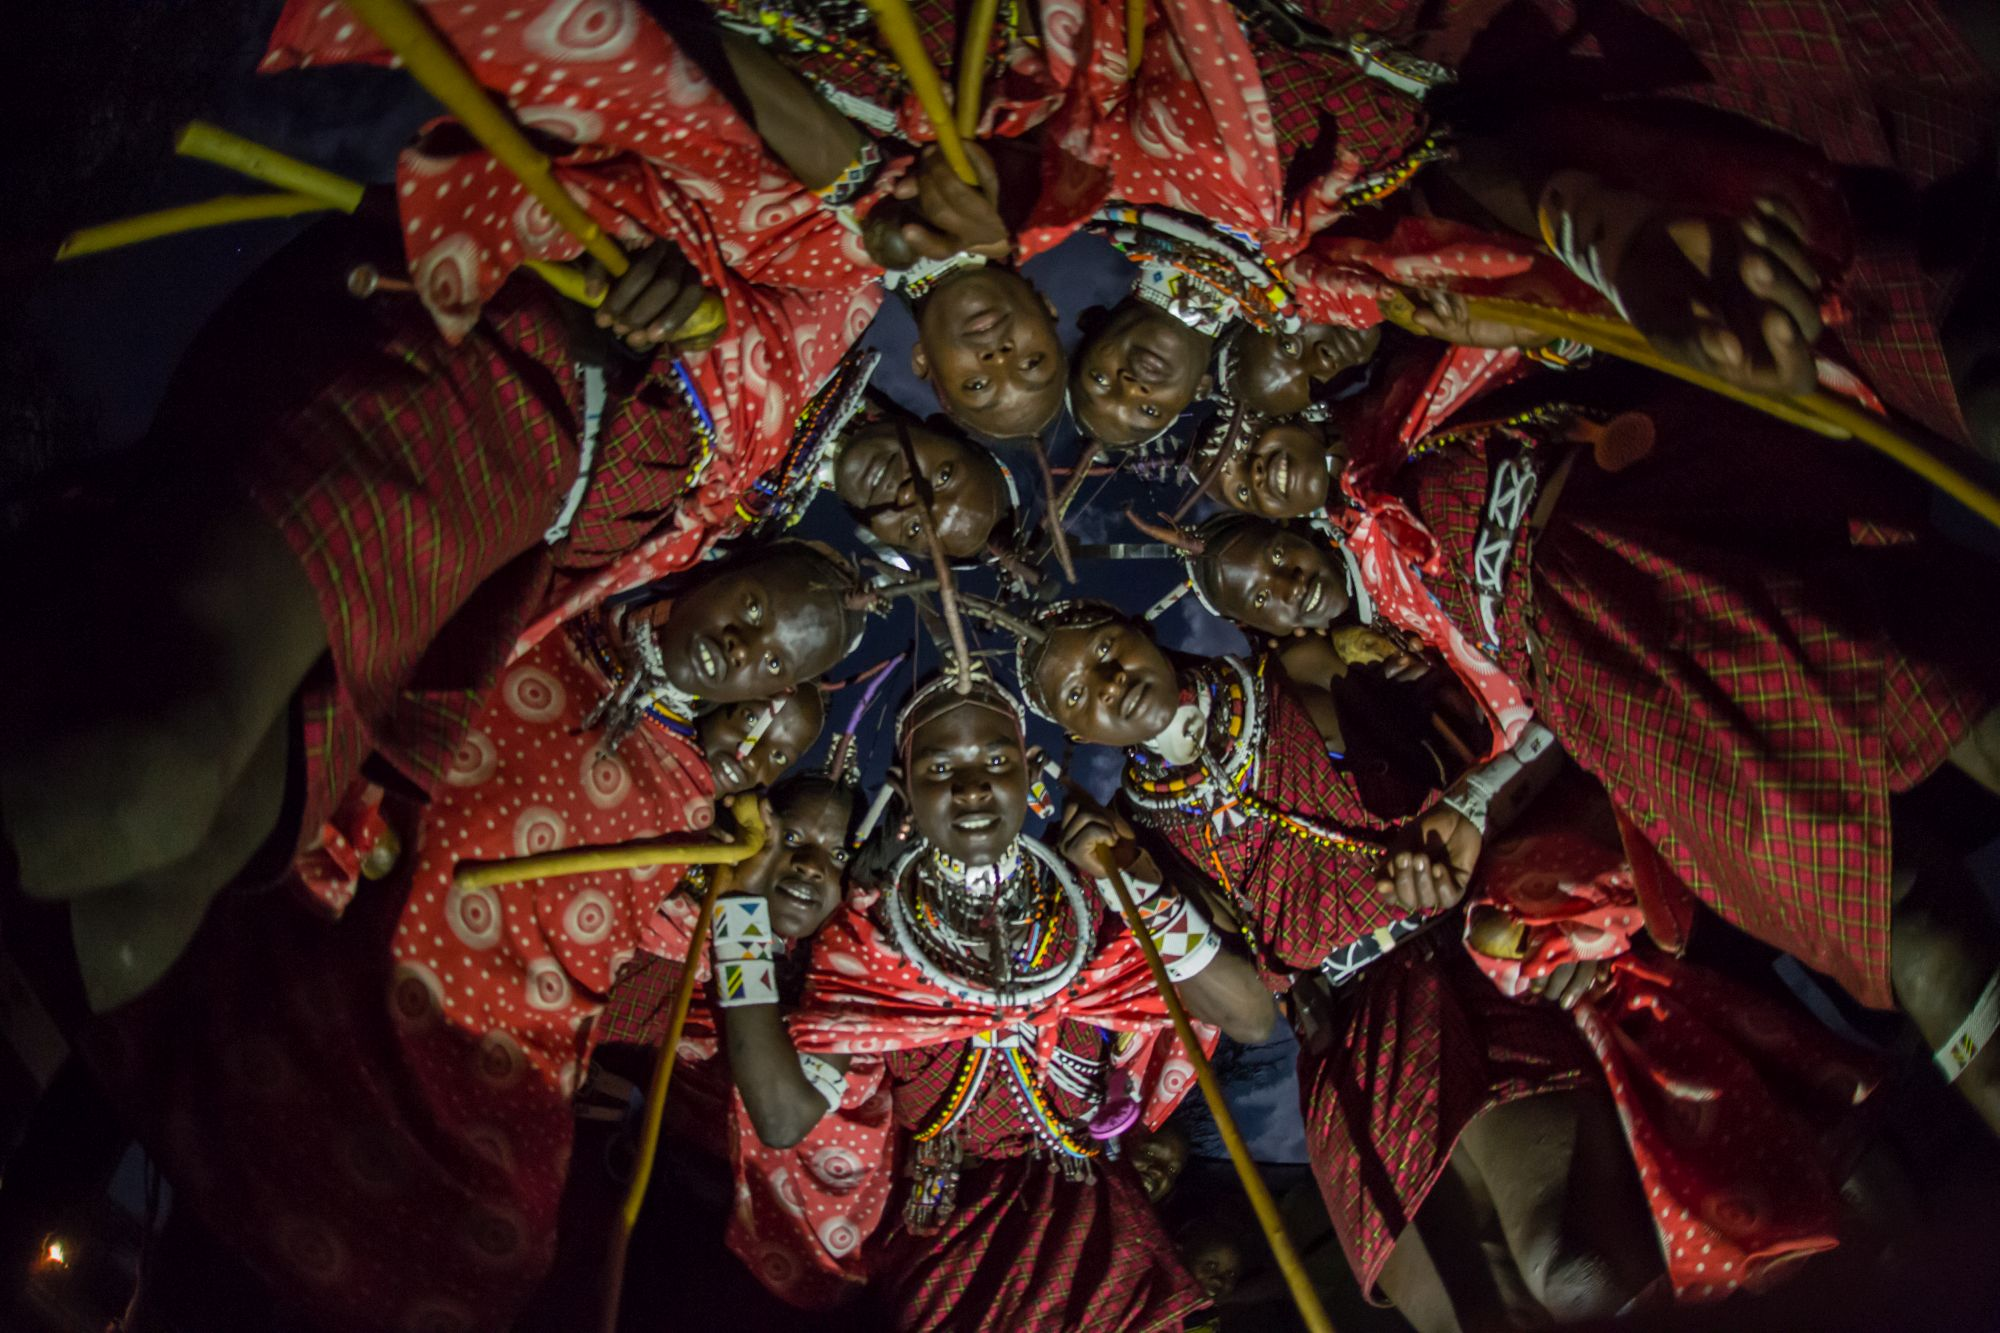 The Maasai morans.